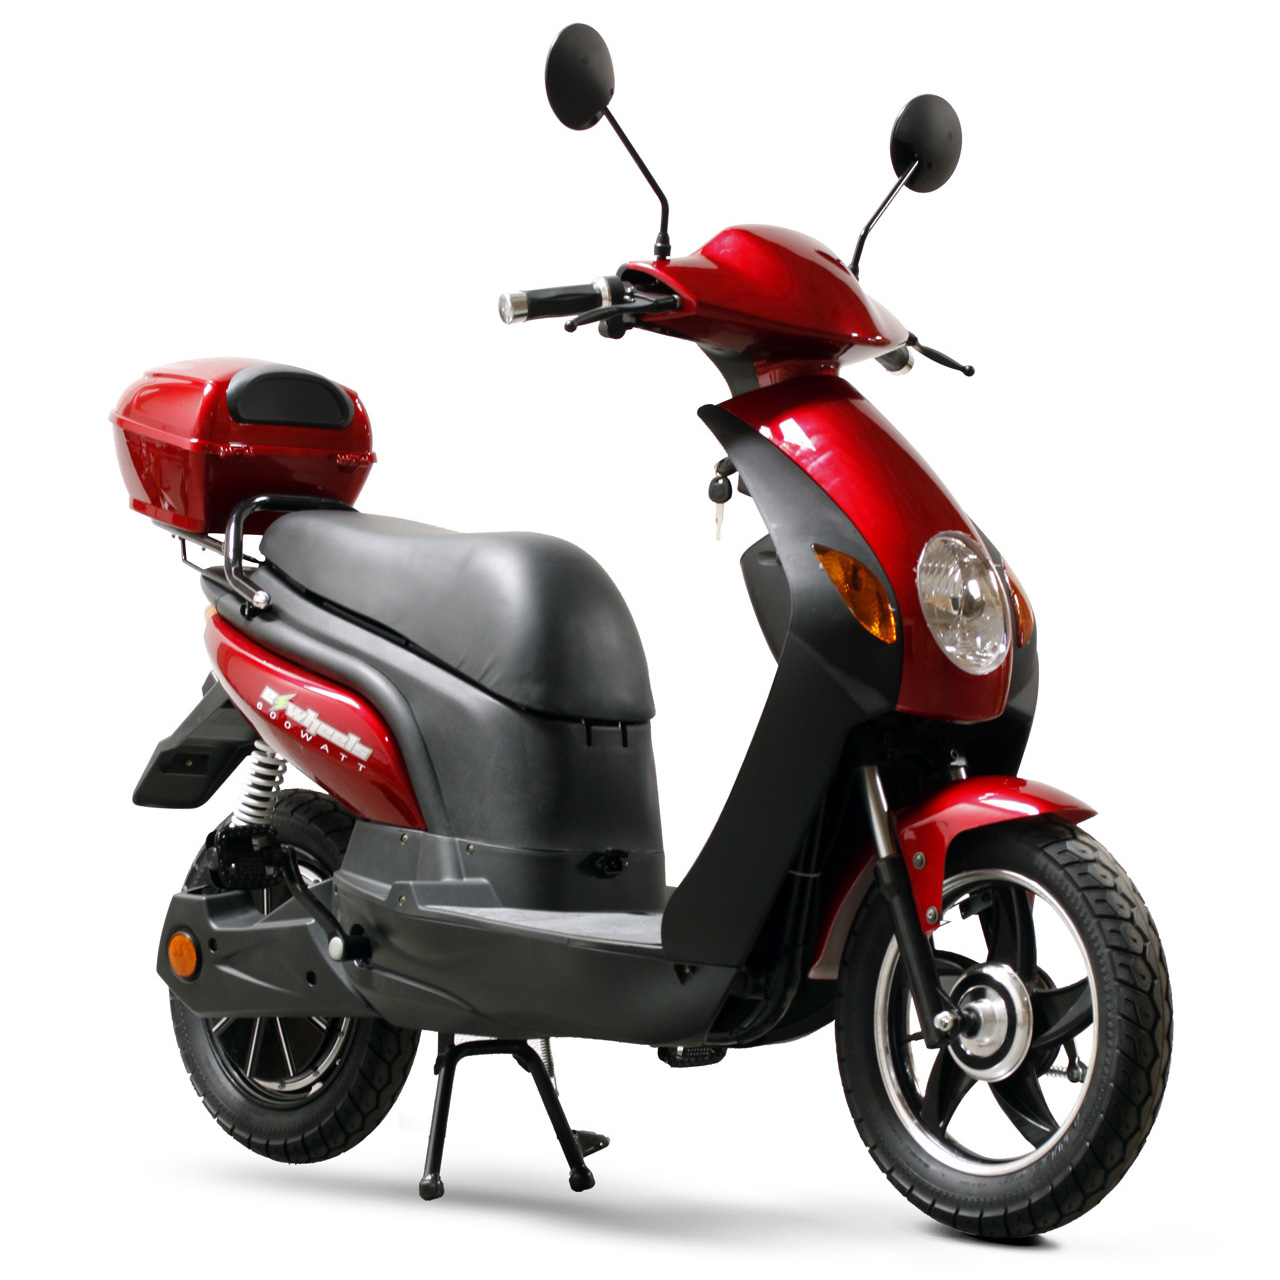 600 Watt 48v Electric Assisted Bike Moped Scooter Model Ew 600